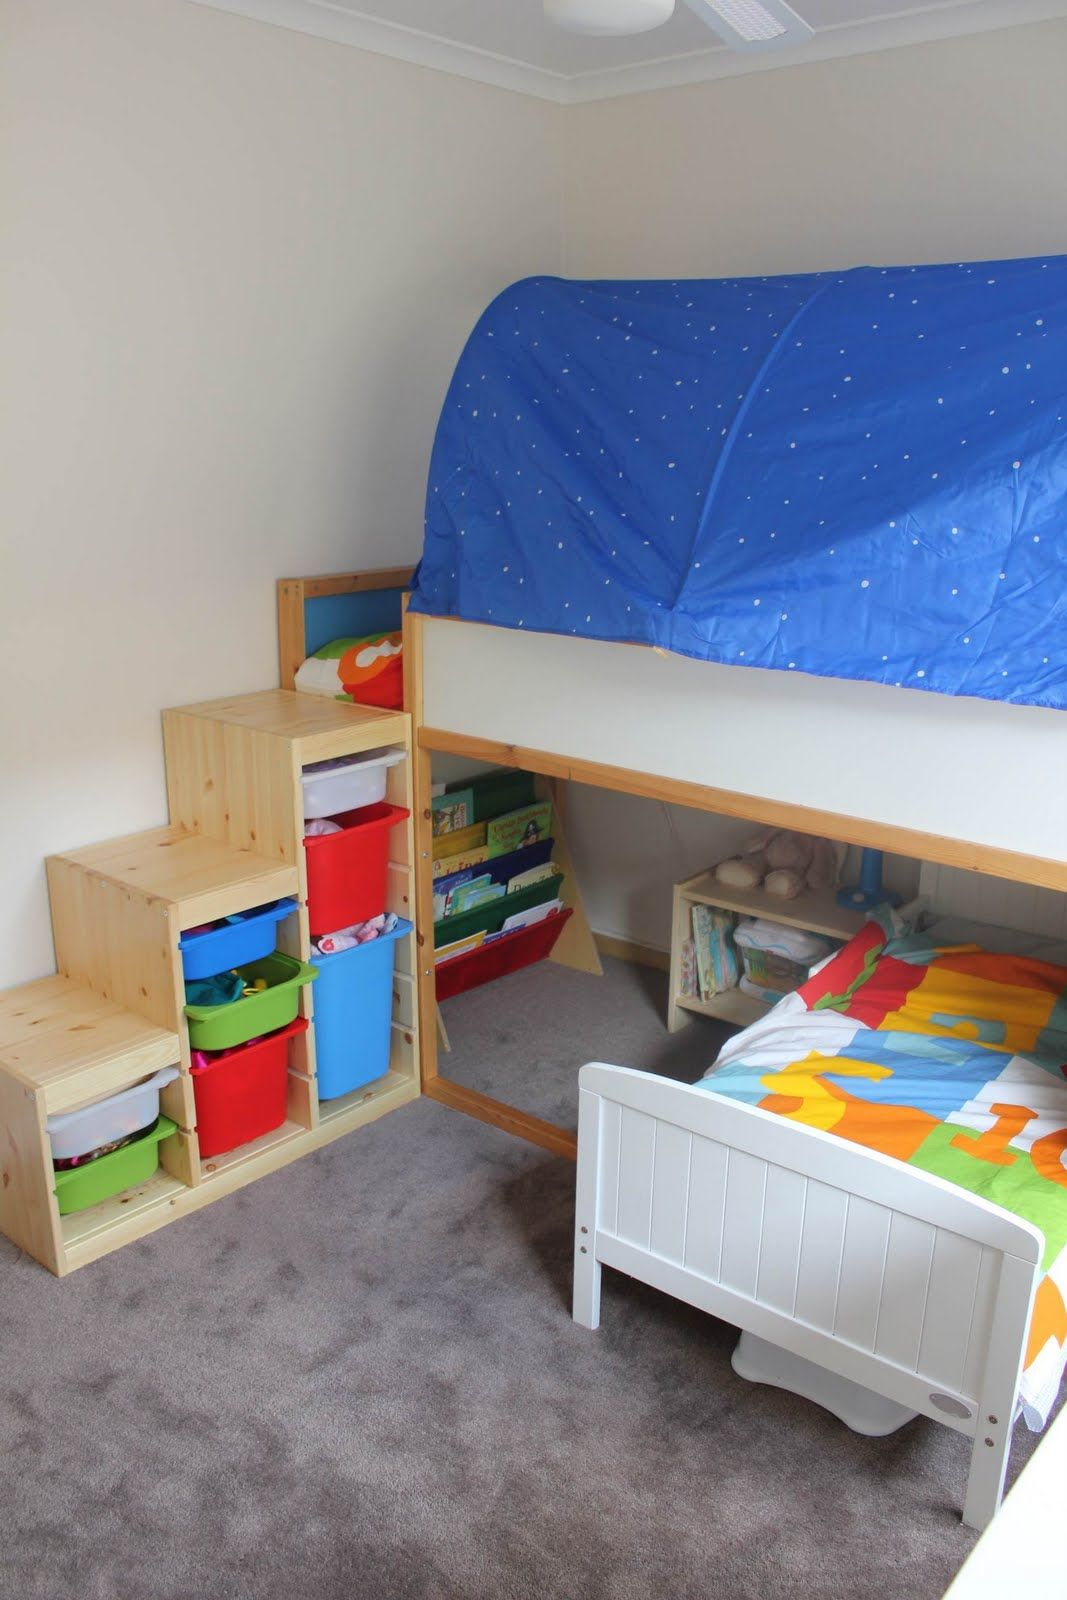 toddler bedroom furniture ikea photo 5. Toddler Bedroom Furniture Ikea Photo 5